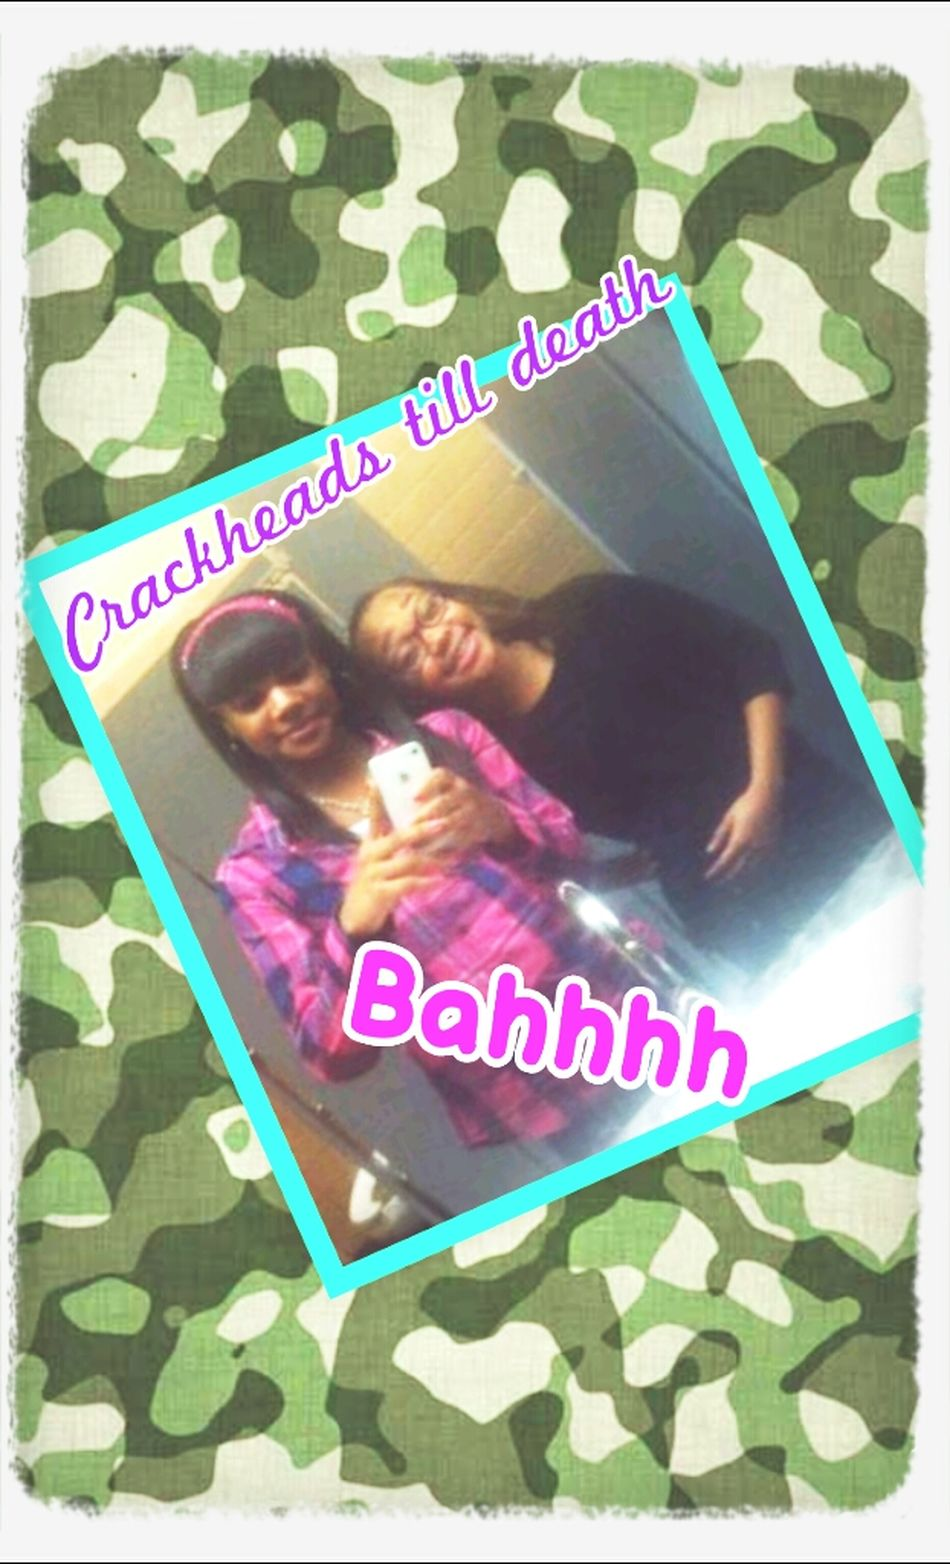 Me And My Bestie She My ROD Eff The Drama We Goin Through She My Kill Or Steal No Lie Braah